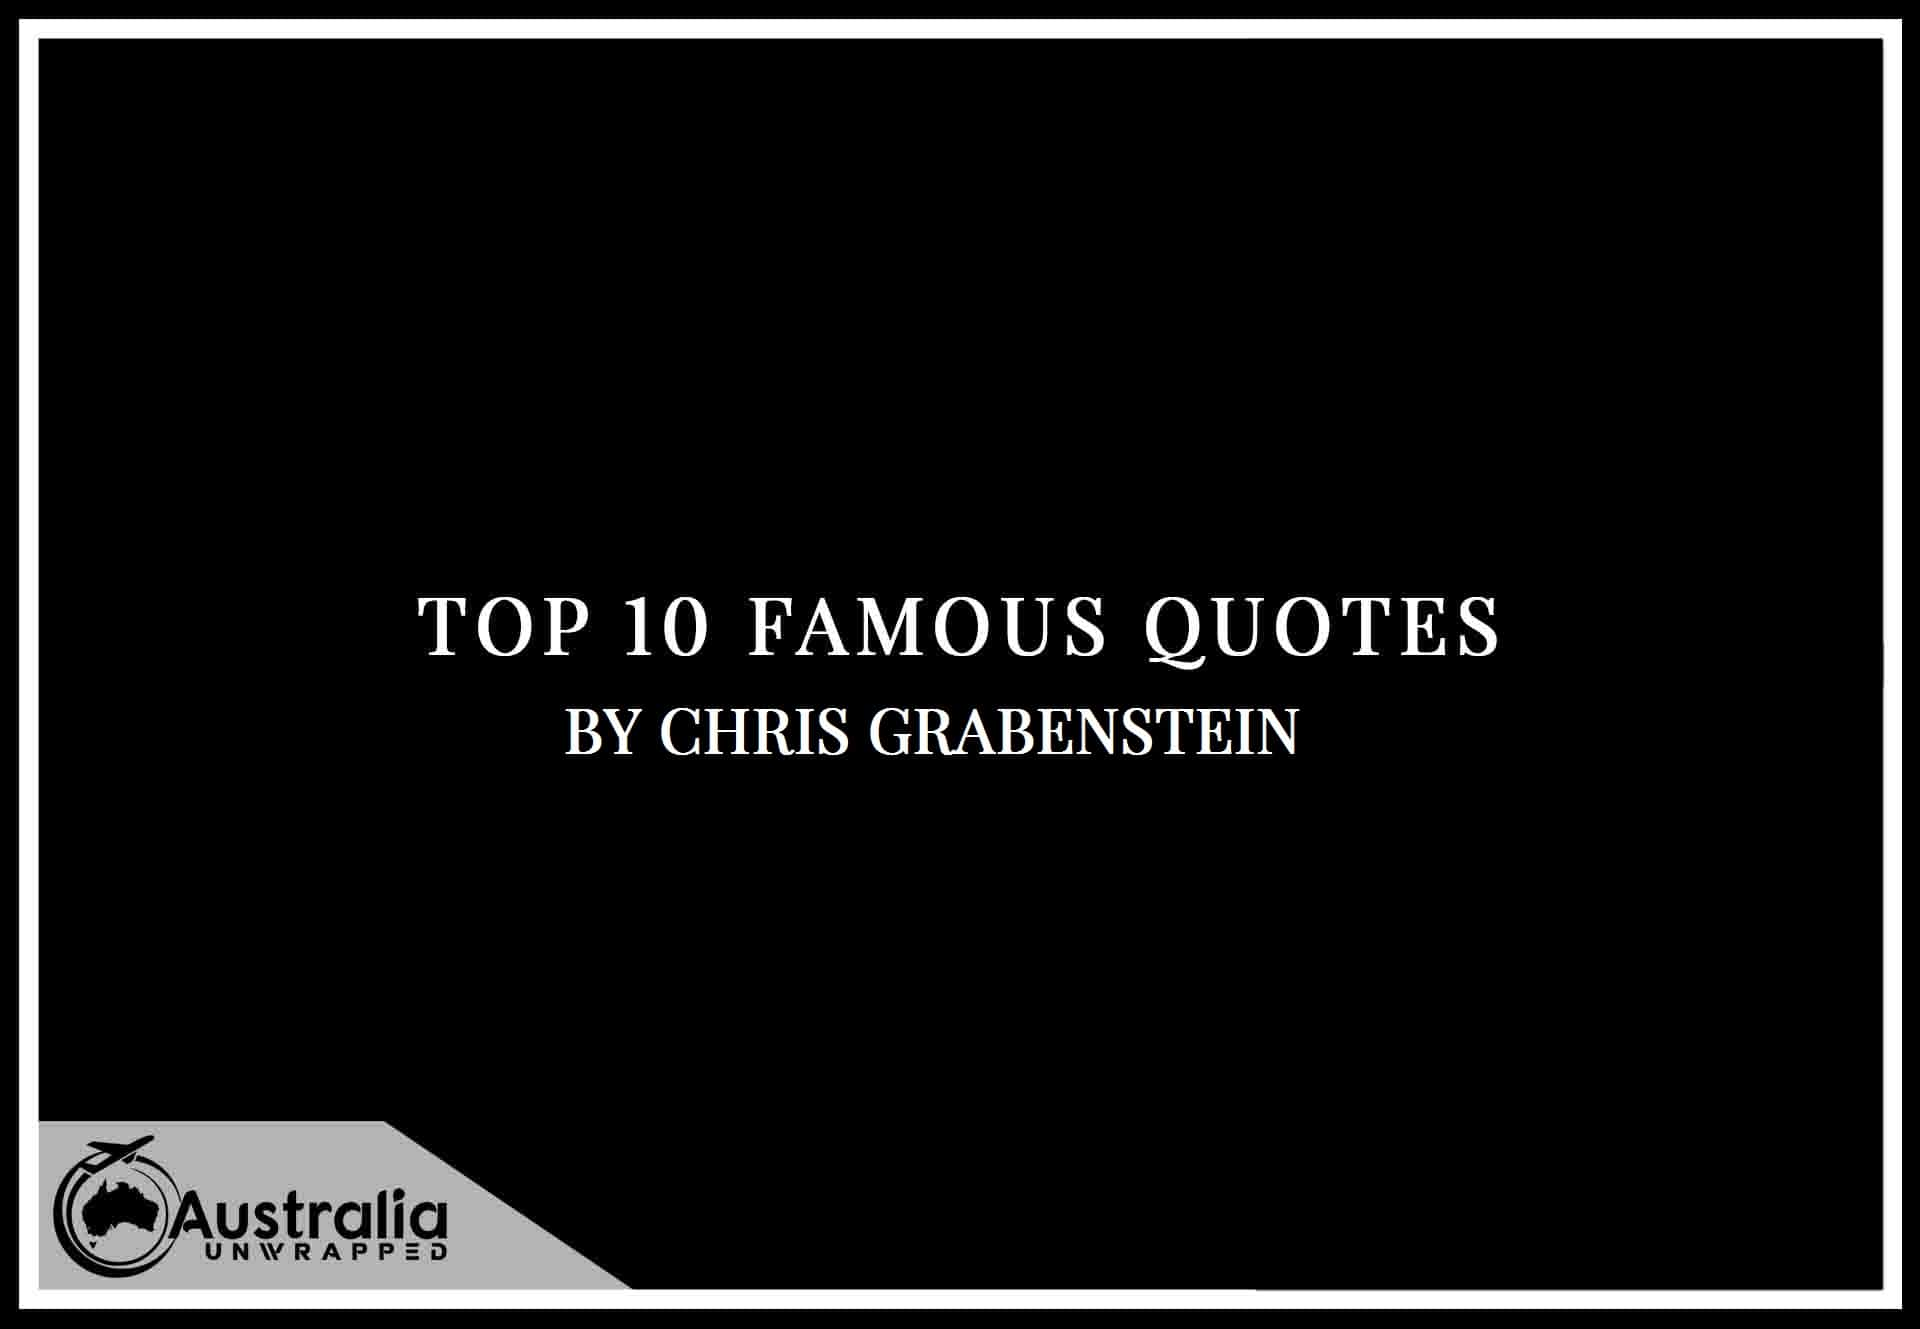 Chris Grabenstein's Top 10 Popular and Famous Quotes